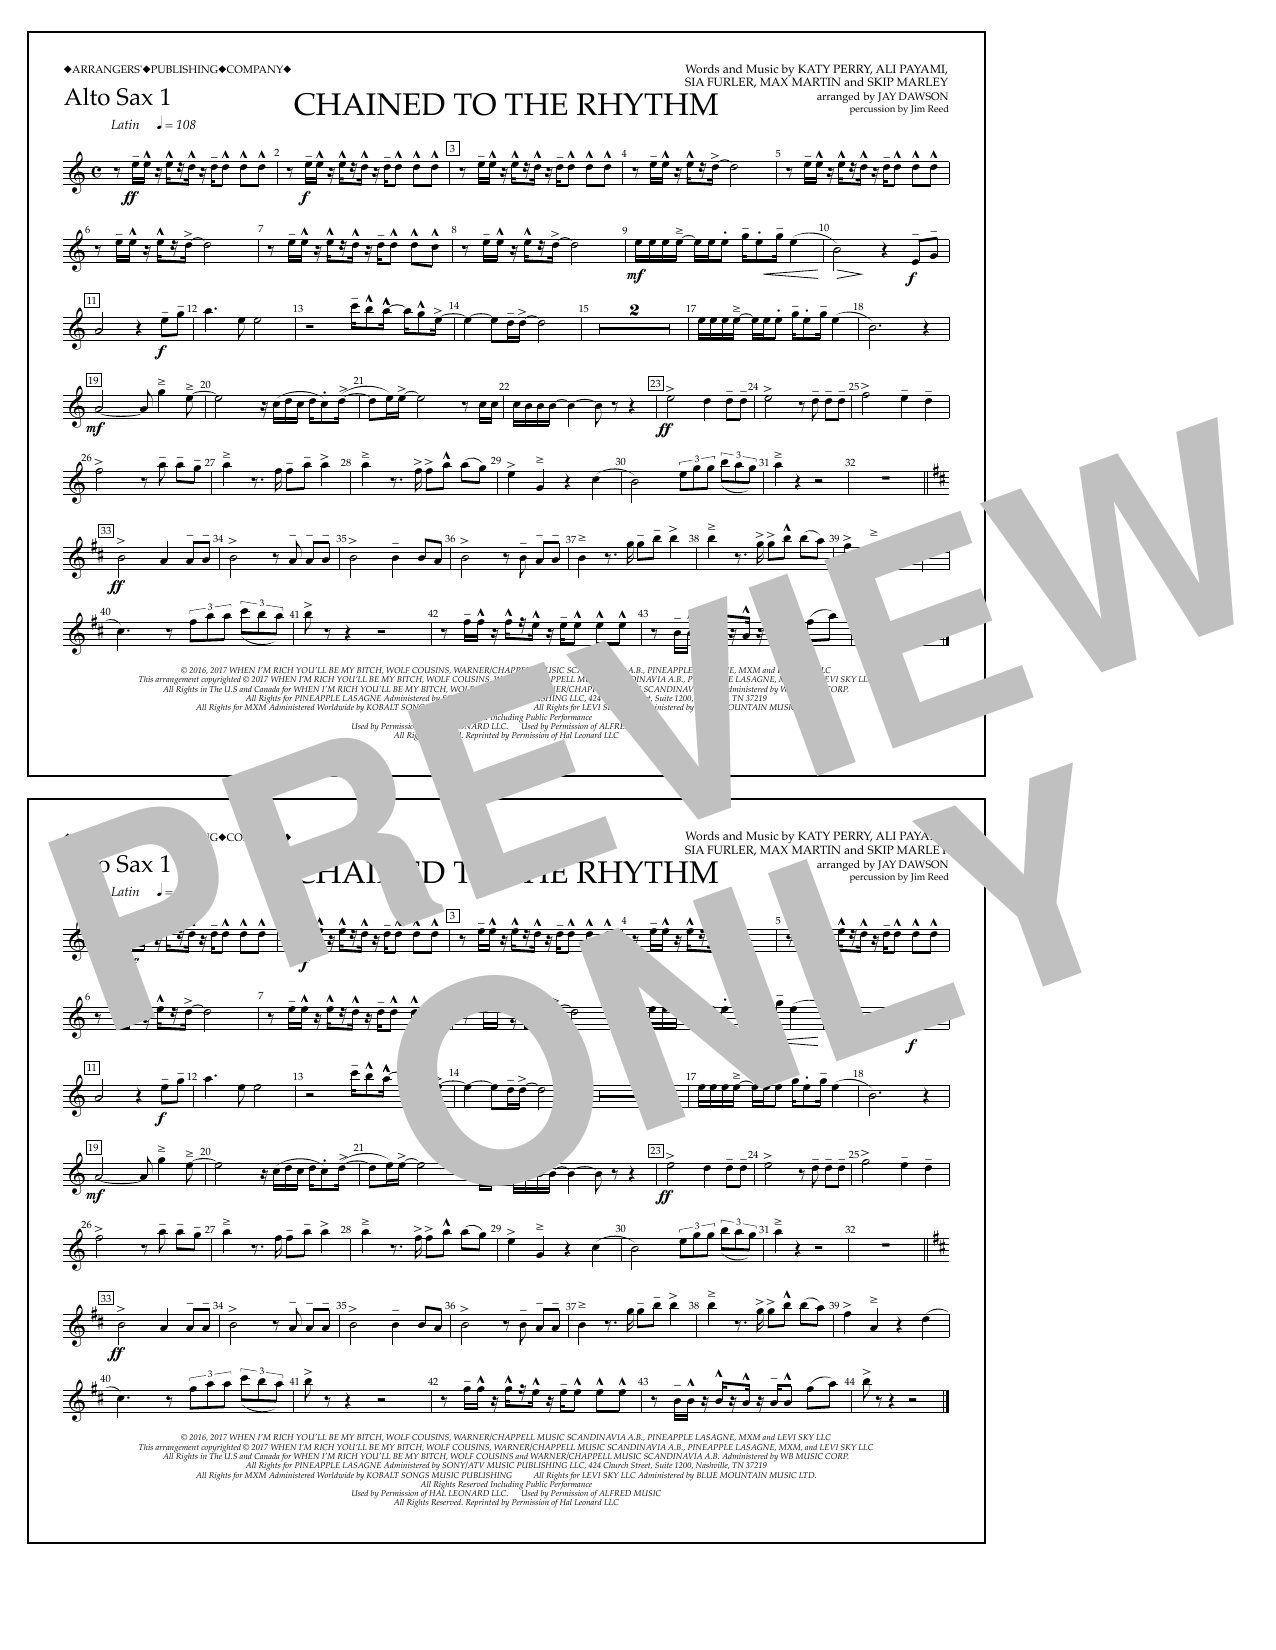 Chained to the Rhythm - Alto Sax 1 Sheet Music